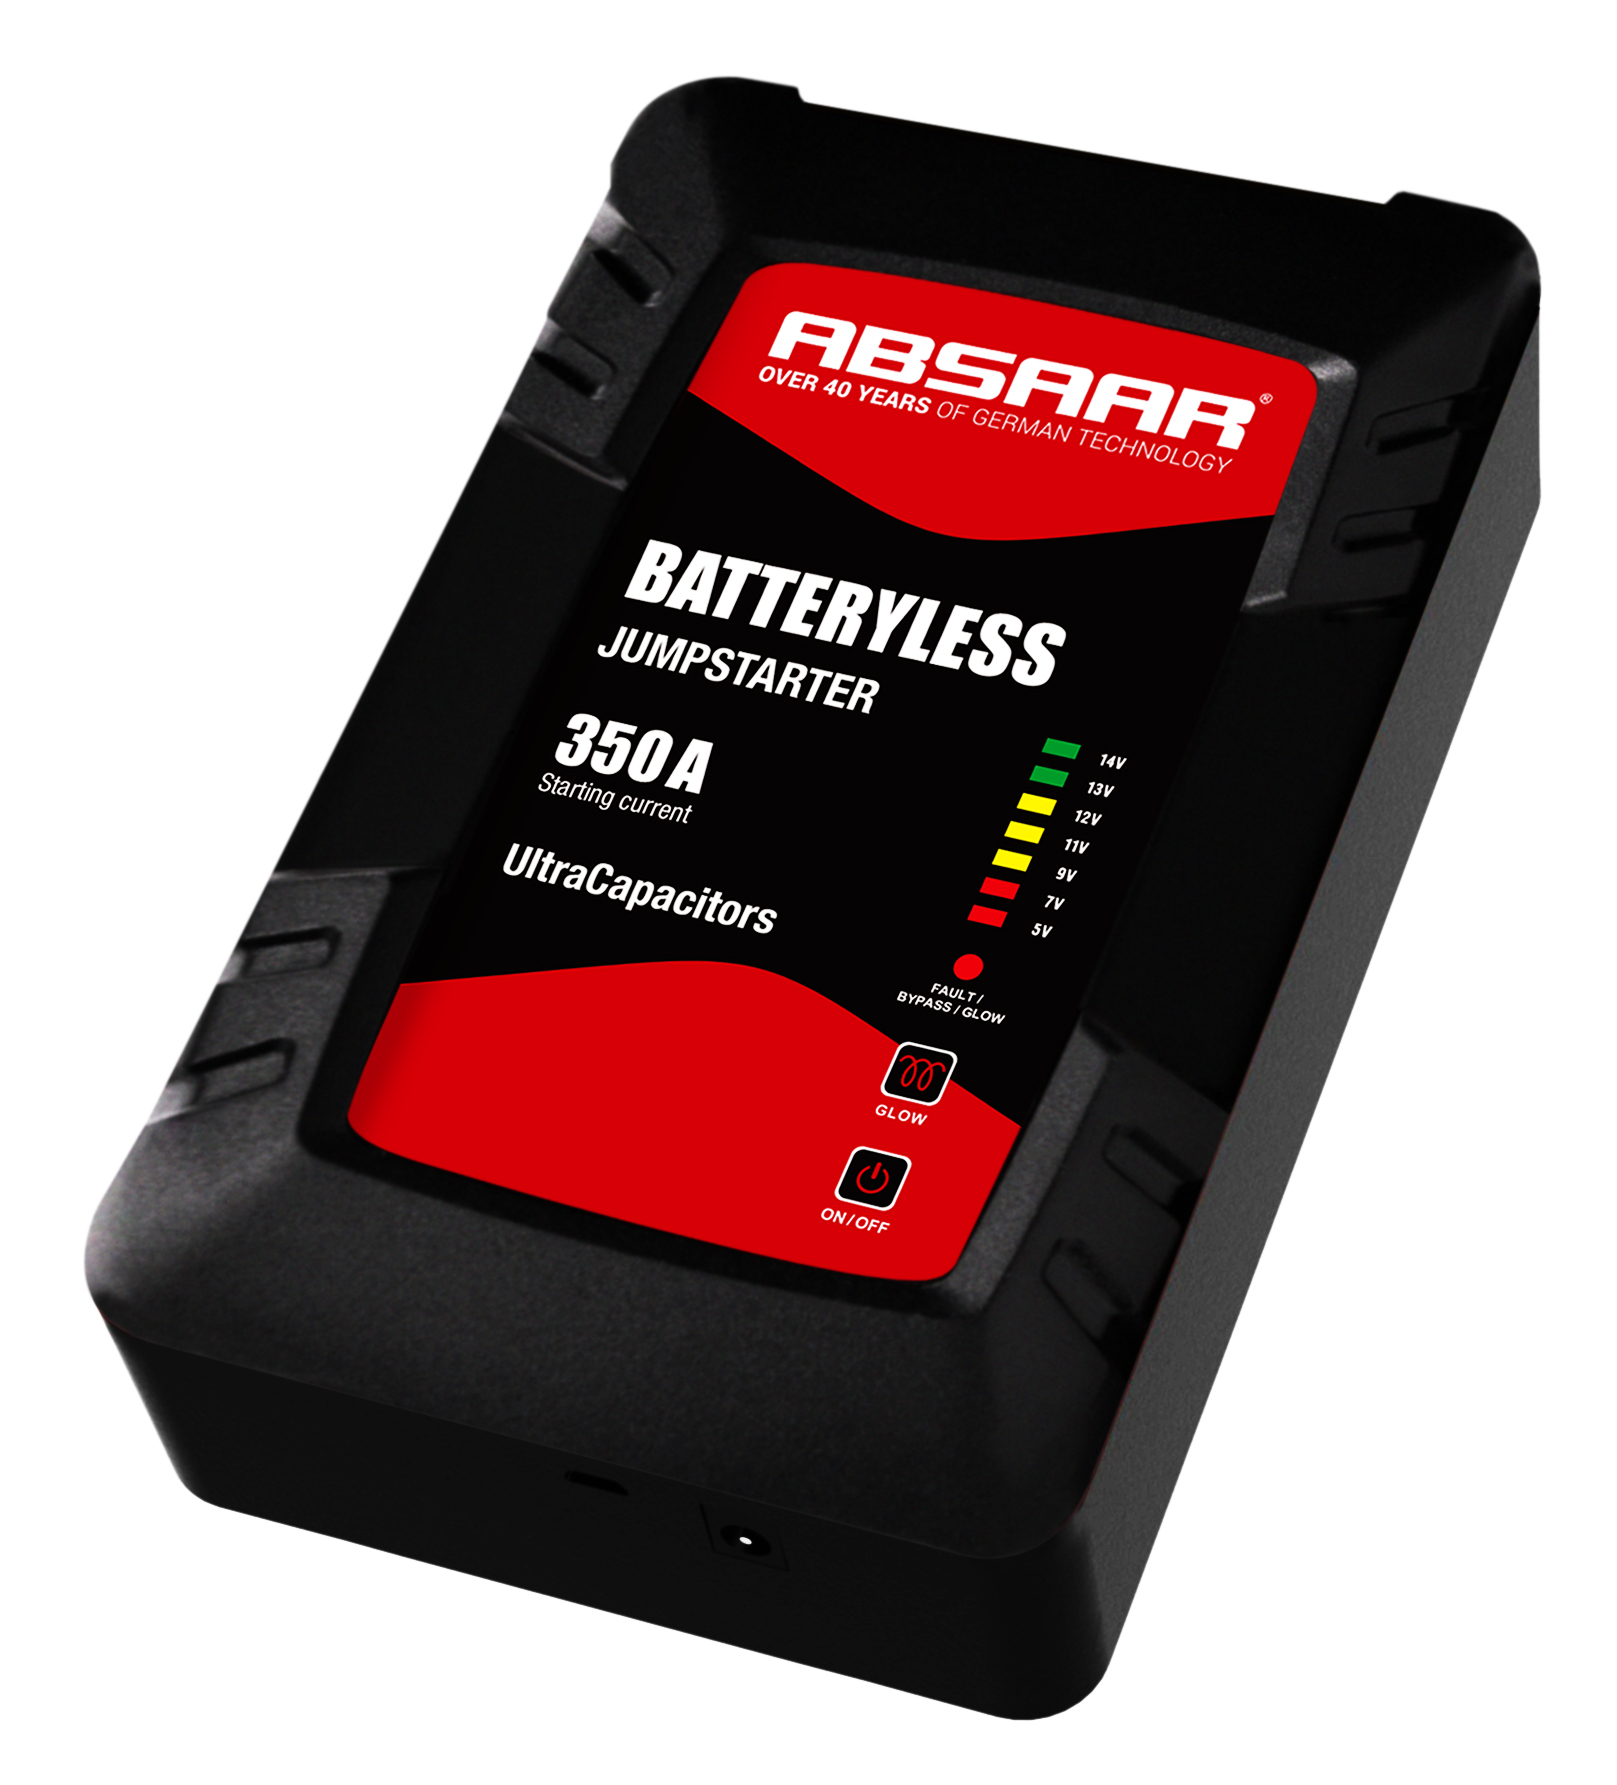 batteryless jumpstarter